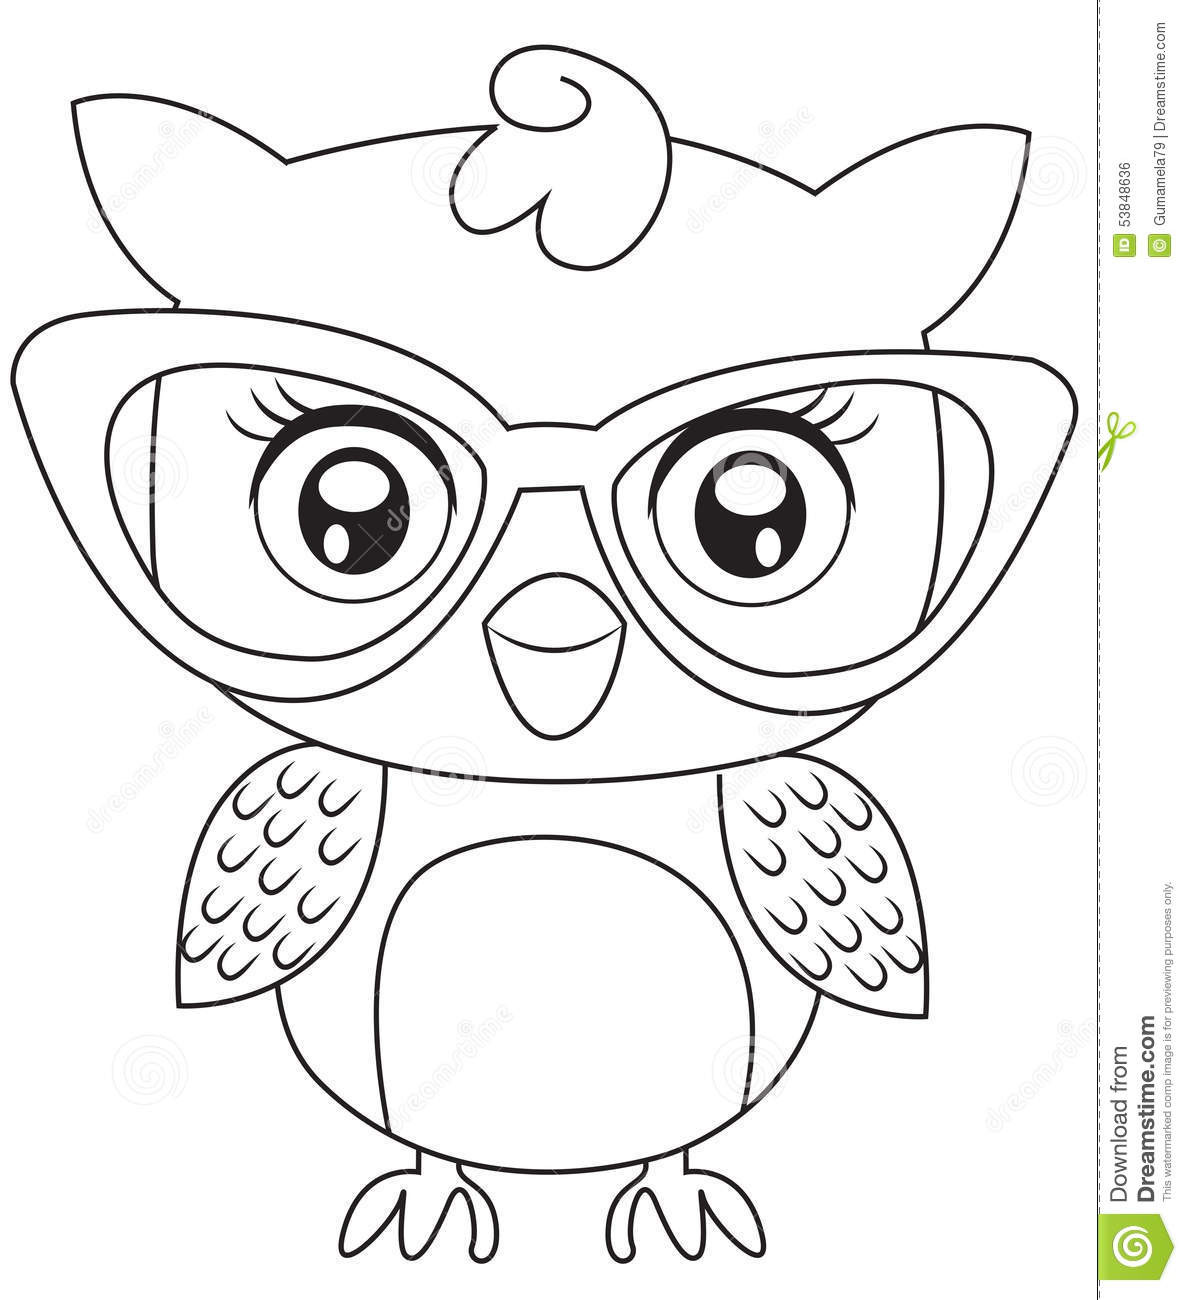 Best ideas about Owl Coloring Sheets For Girls That Say Mom . Save or Pin Owl With Eyeglasses Coloring Page Stock Illustration Now.